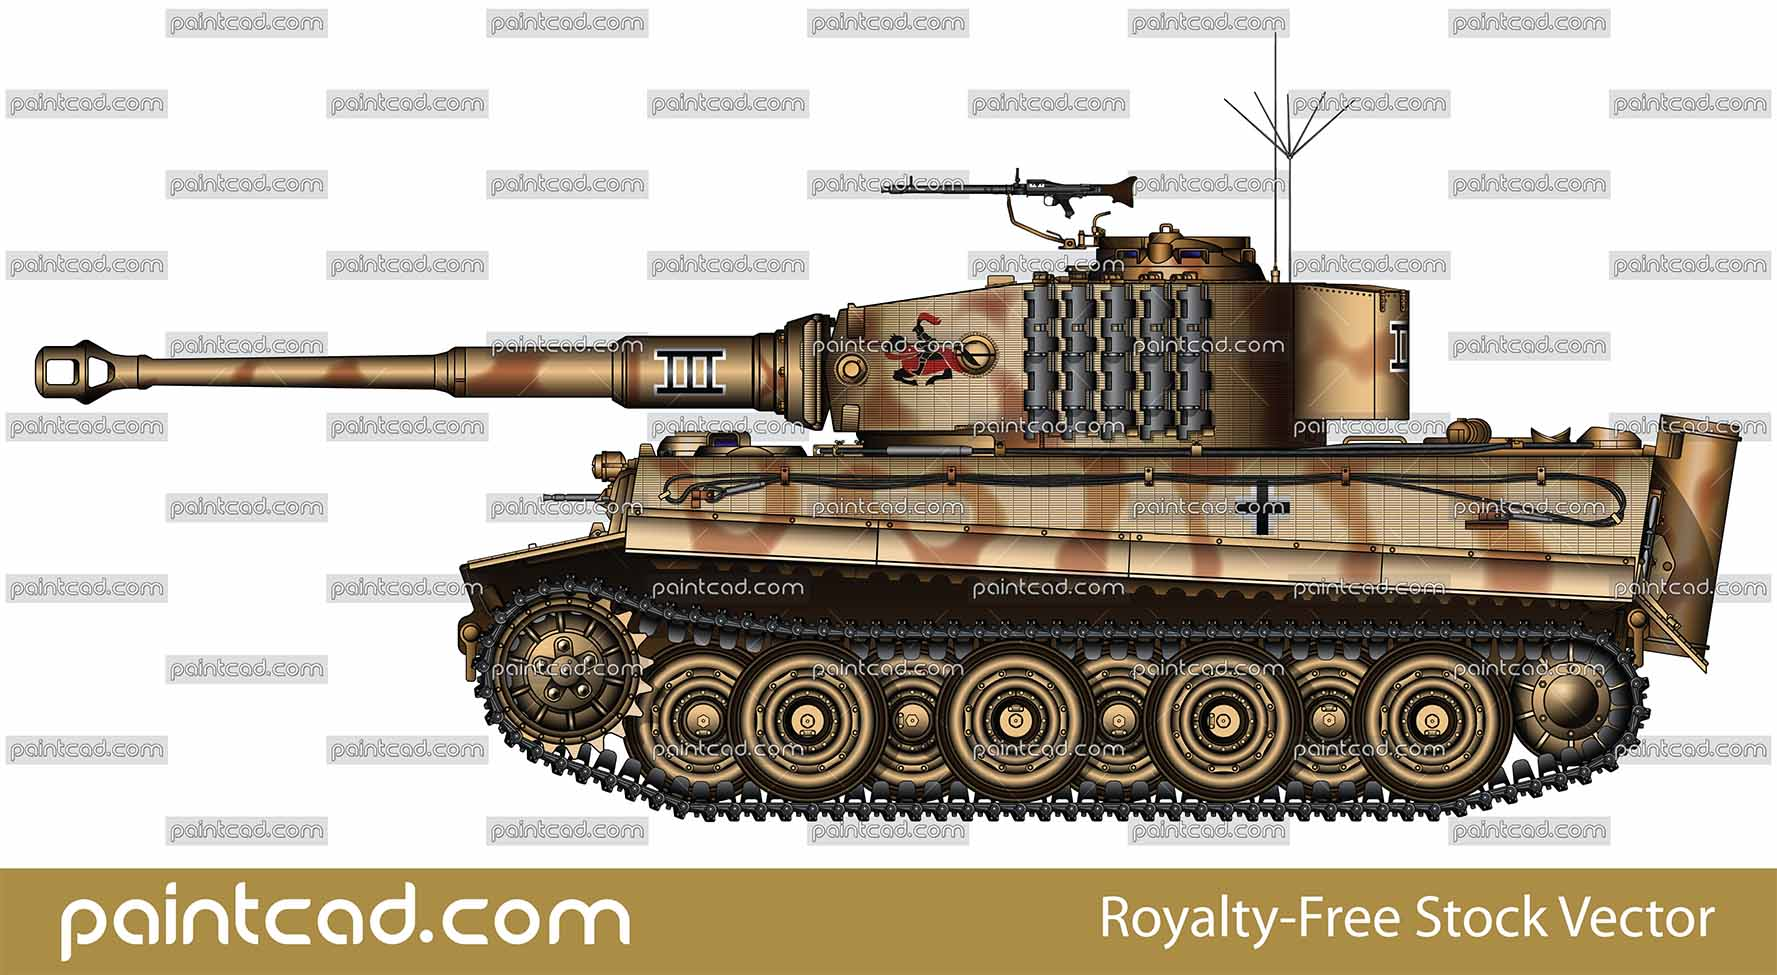 Vector illustration with side view of heavy German tank  PzKpfw VI Tiger I Ausf. E from WW2 used in Battle of Kursk, USSR 1944. On turret is painted a Knight on horse with pike.That is insignia of 505th Heavy Panzer Battalion. Armored fighting vehicle with zimmerit cover used against magnetically attached anti-tank mines. Realistic color vector drawing. Isolated object over white background.